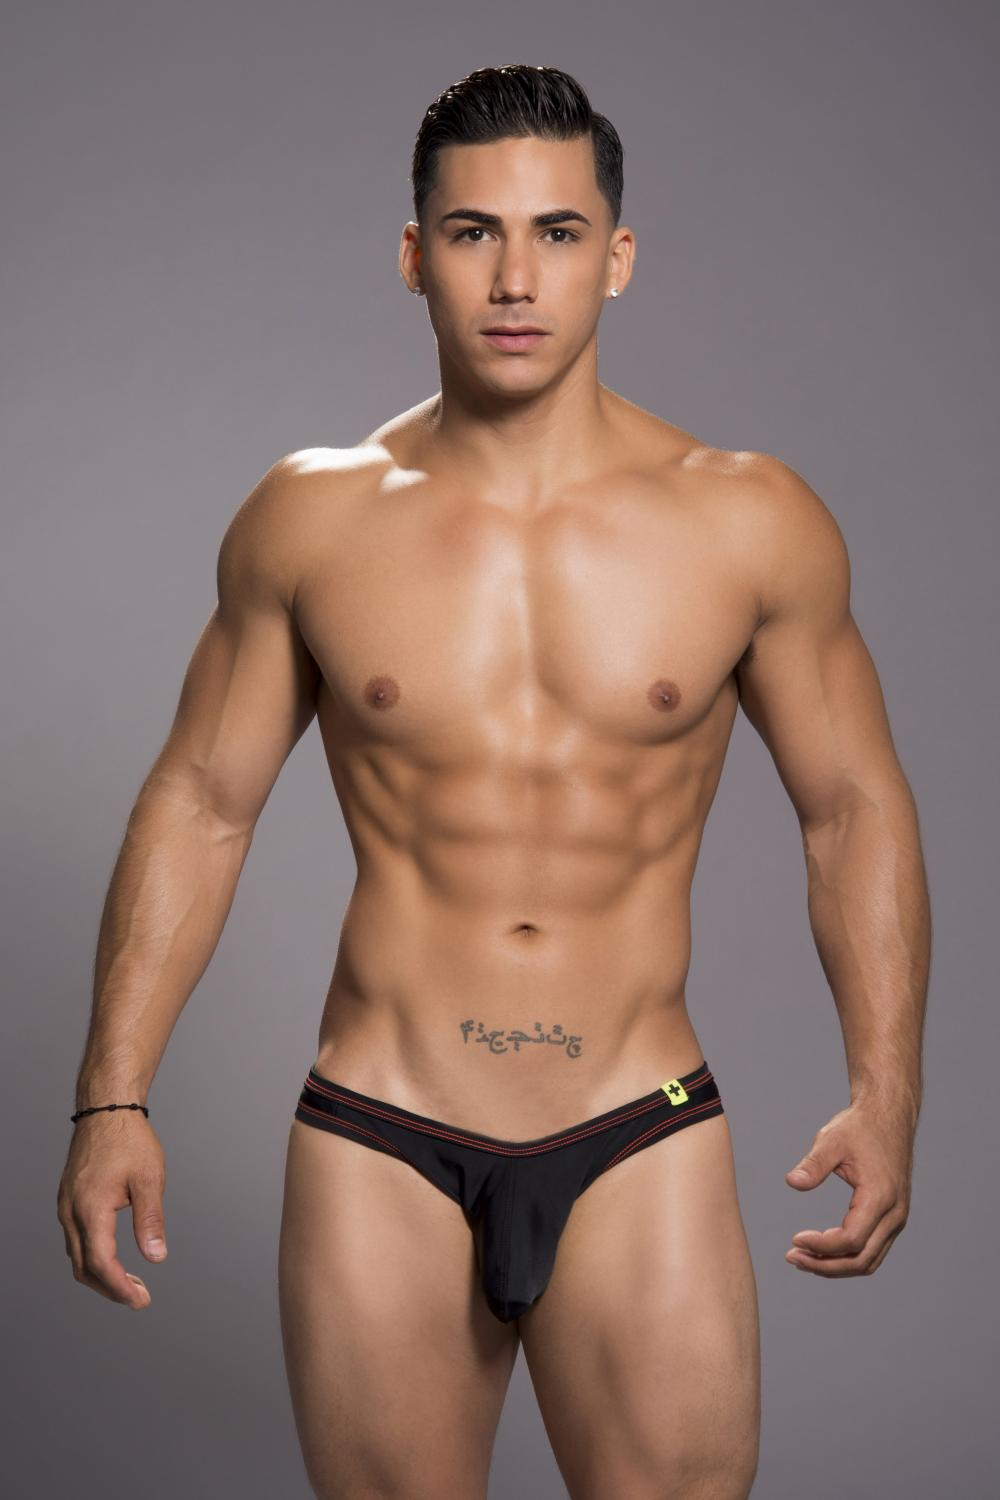 Brief Distraction features Andrew Christian